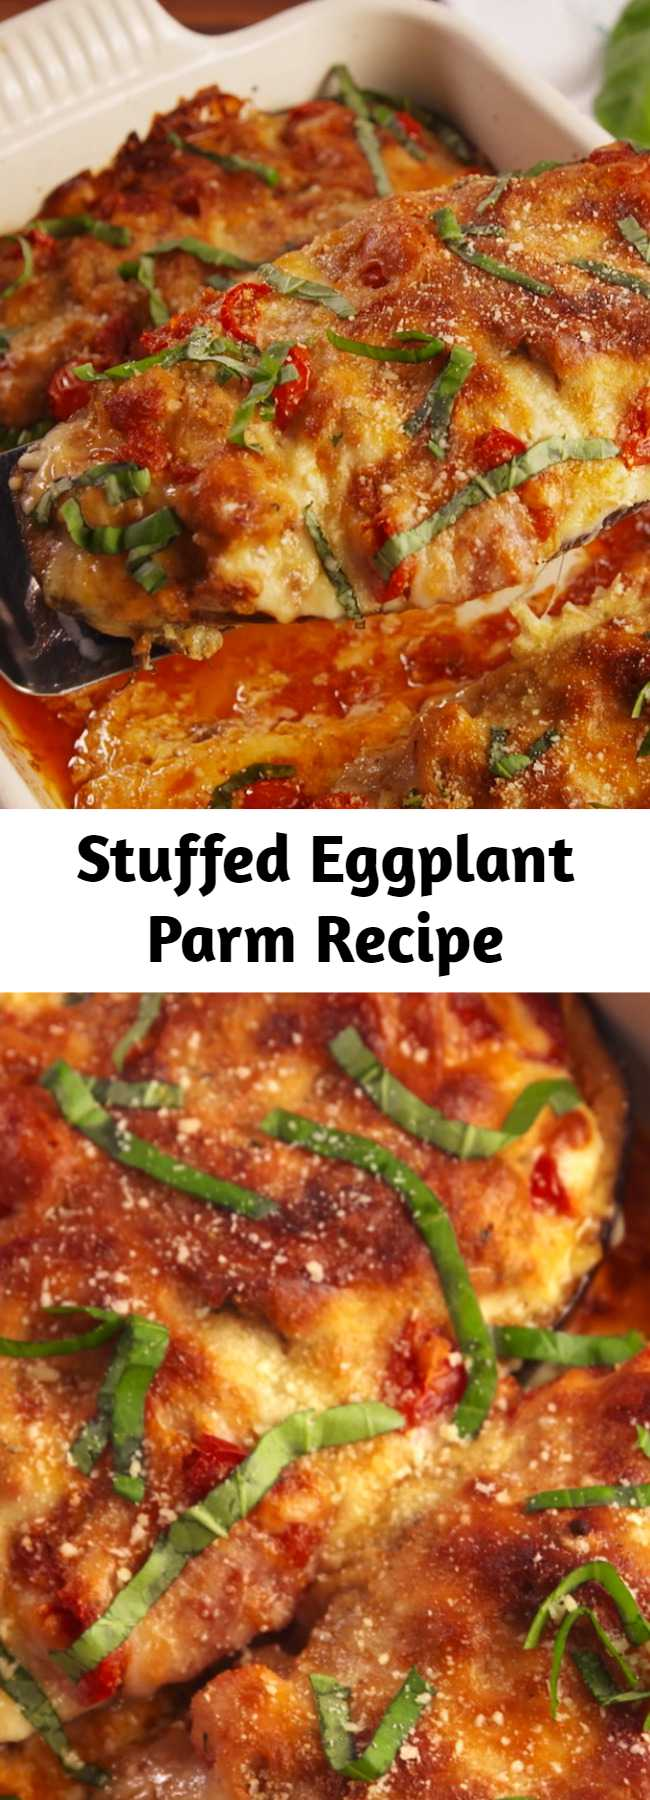 Stuffed Eggplant Parm Recipe - Stuffed Eggplant Parm is the low-carb dinner that will make you actually want to eat vegetables. You won't miss the pasta.